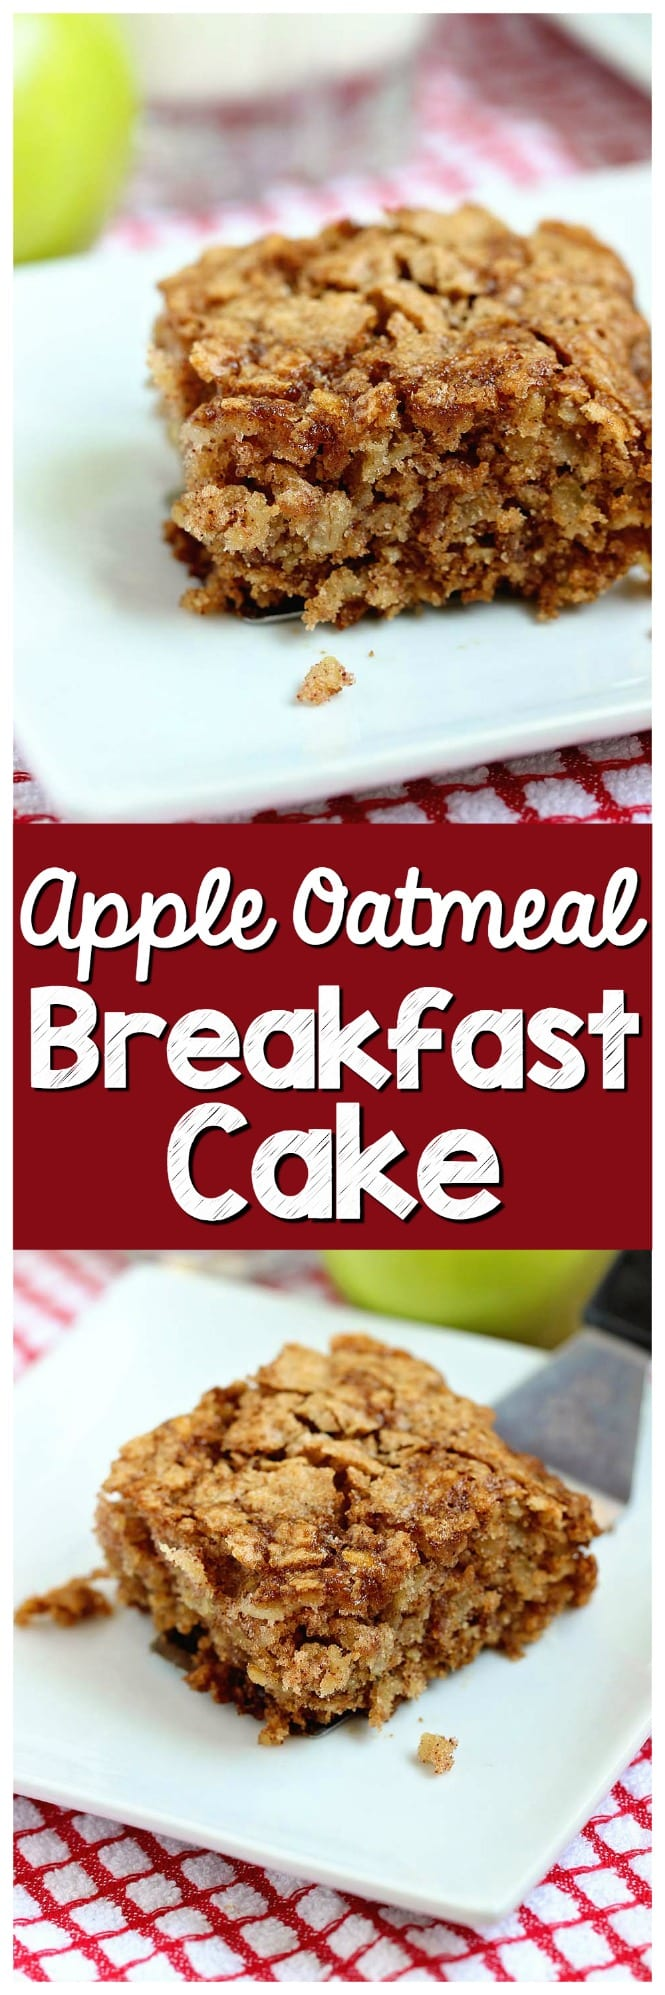 Apple Oatmeal Breakfast Cake - An easy and delicious breakfast or snack idea filled with shredded apples and oatmeal. It's perfect for back to school!